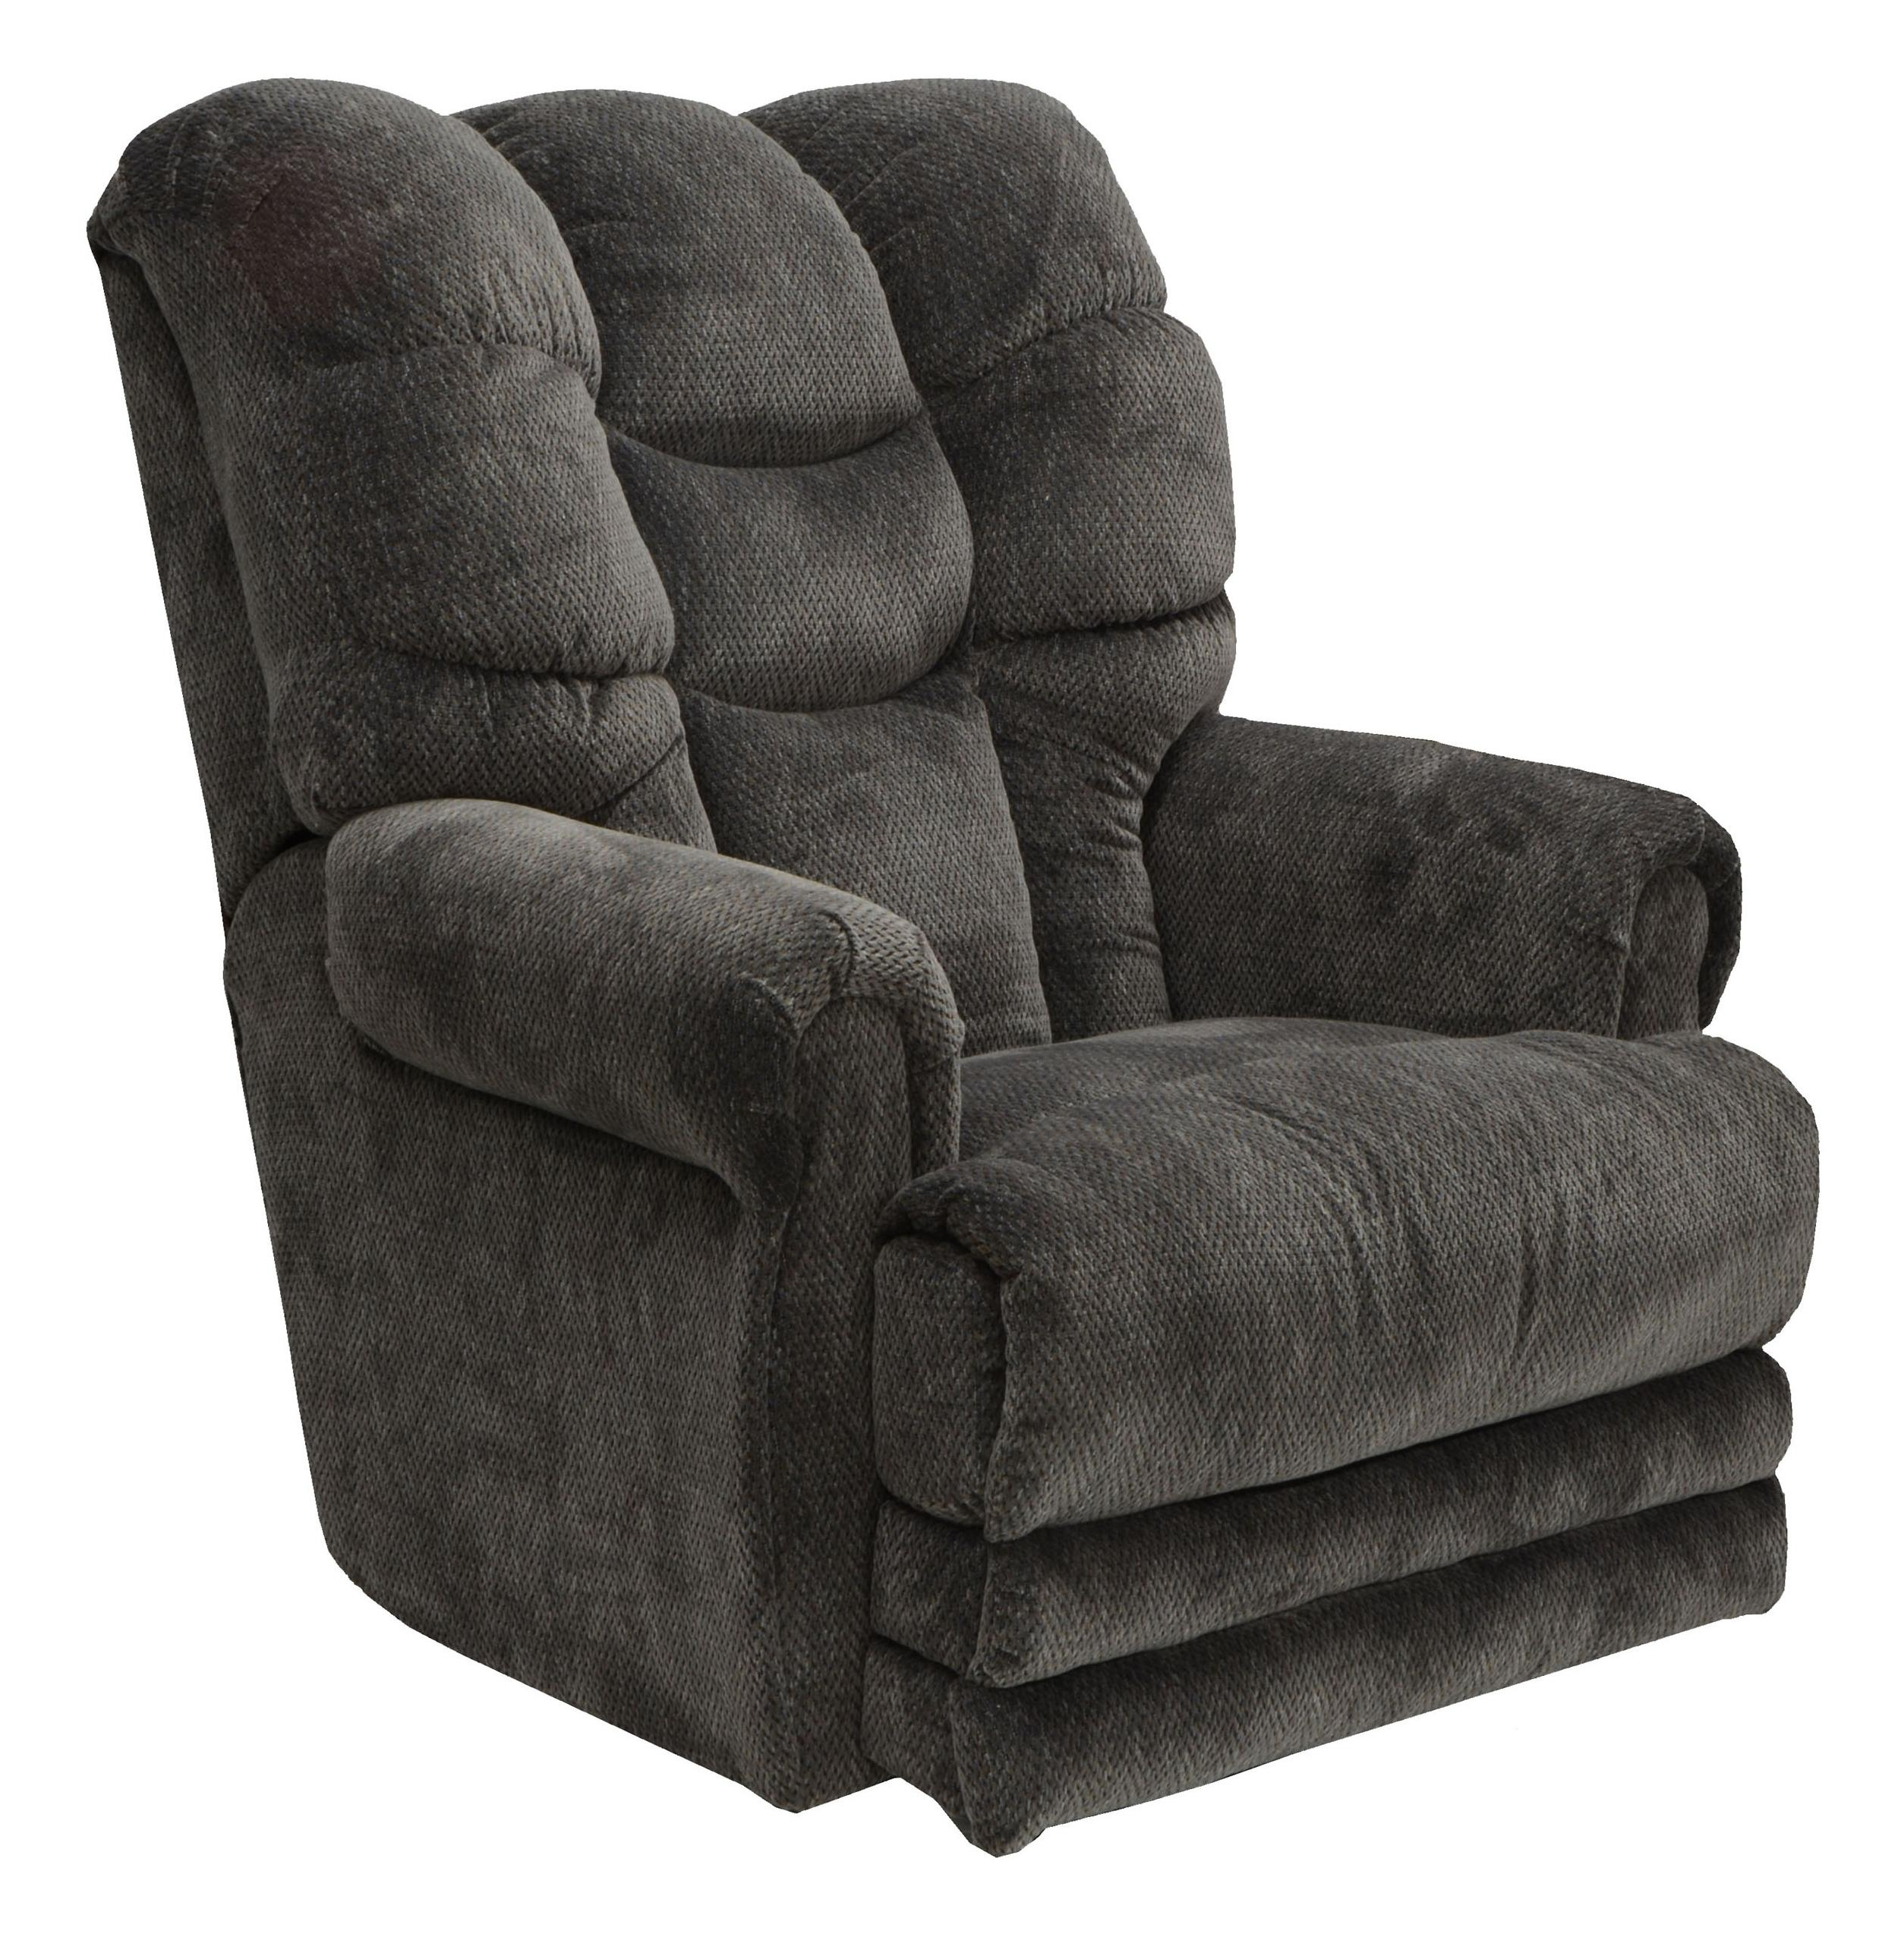 Catnapper Motion Chairs and Recliners Malone Lay Flat Recliner - Item Number: 4257-slate